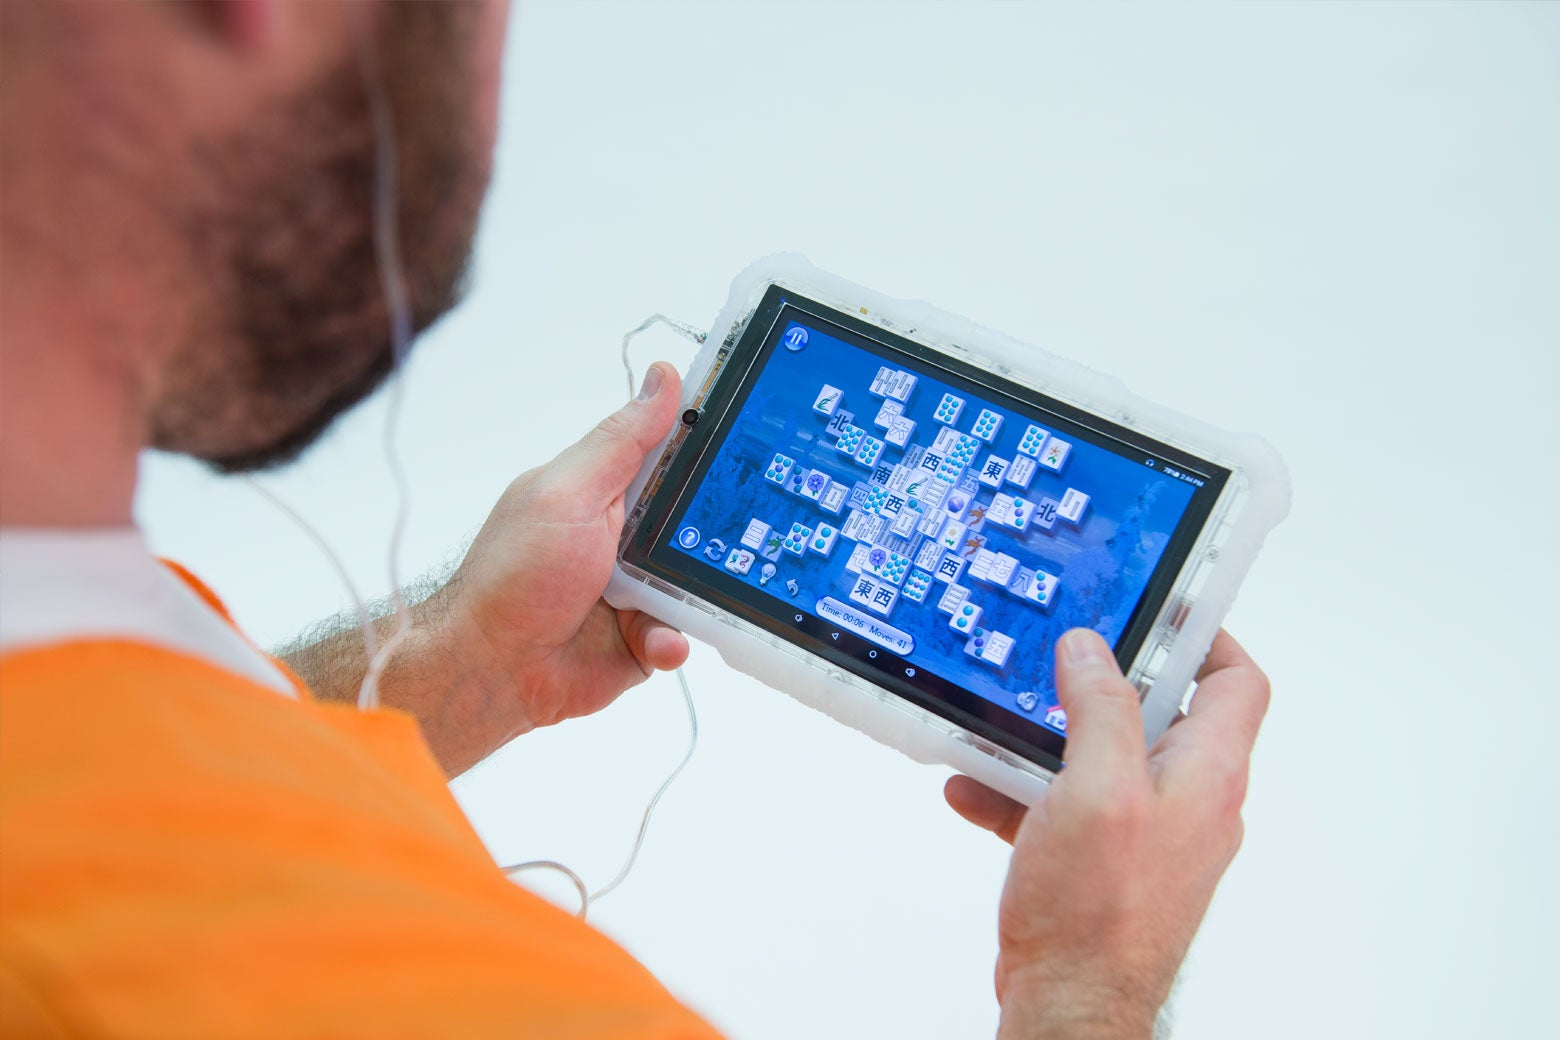 An inmate uses a Global Tel Link tablet.